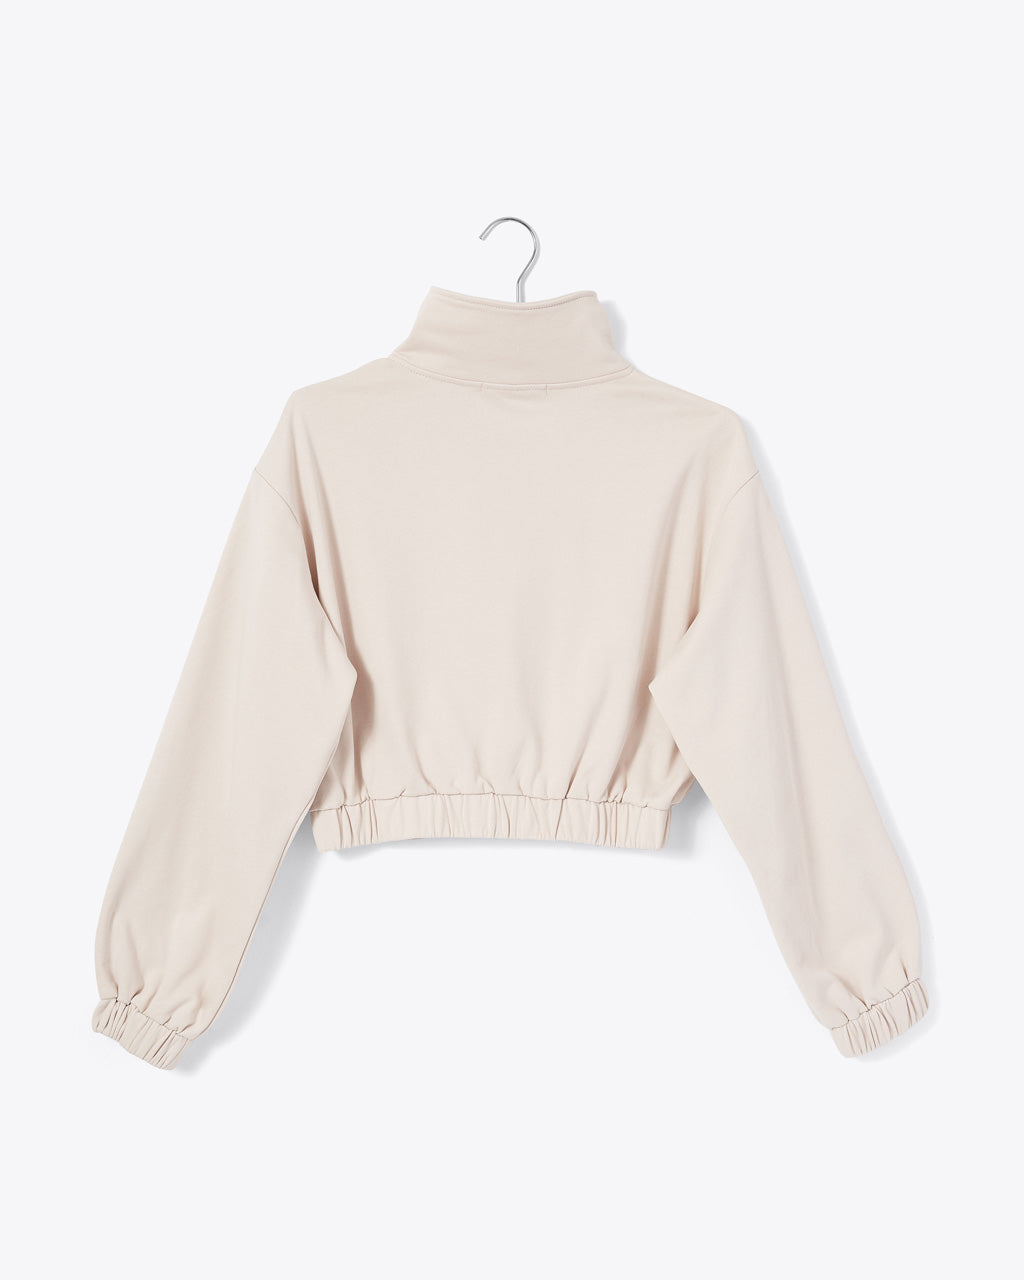 sand colored half zip sweatshirt with mock neck and cinched waist and arm cuffs shown on hanger (BACK)